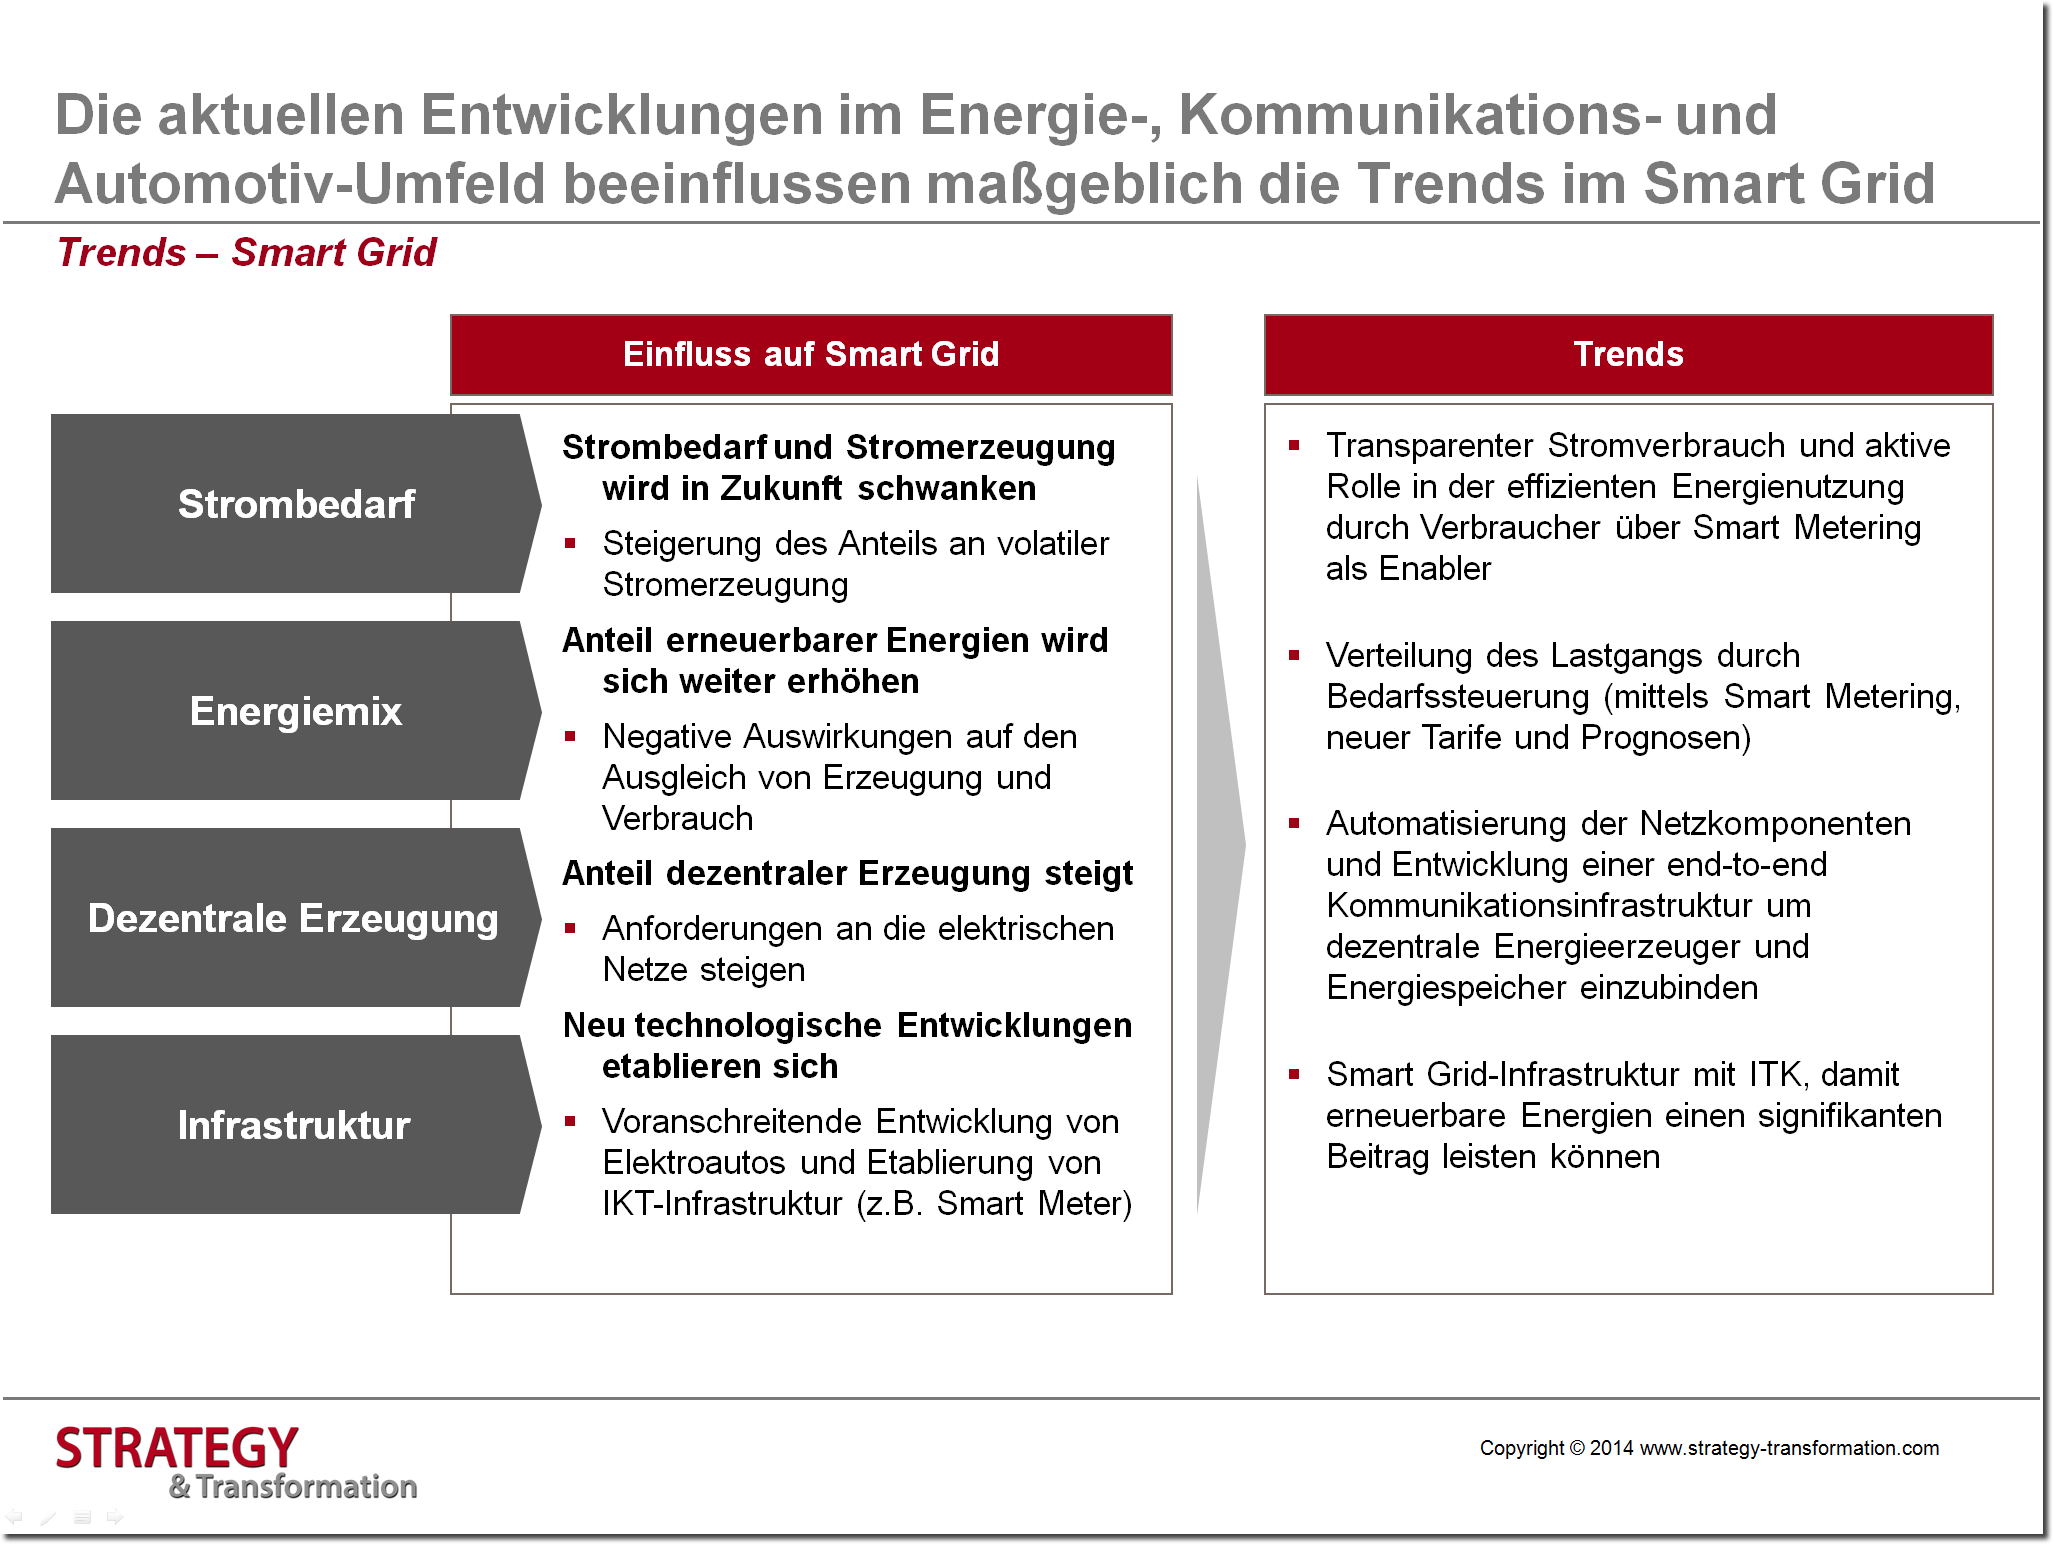 Digitale Transformation Energie_Trends Smart Grid